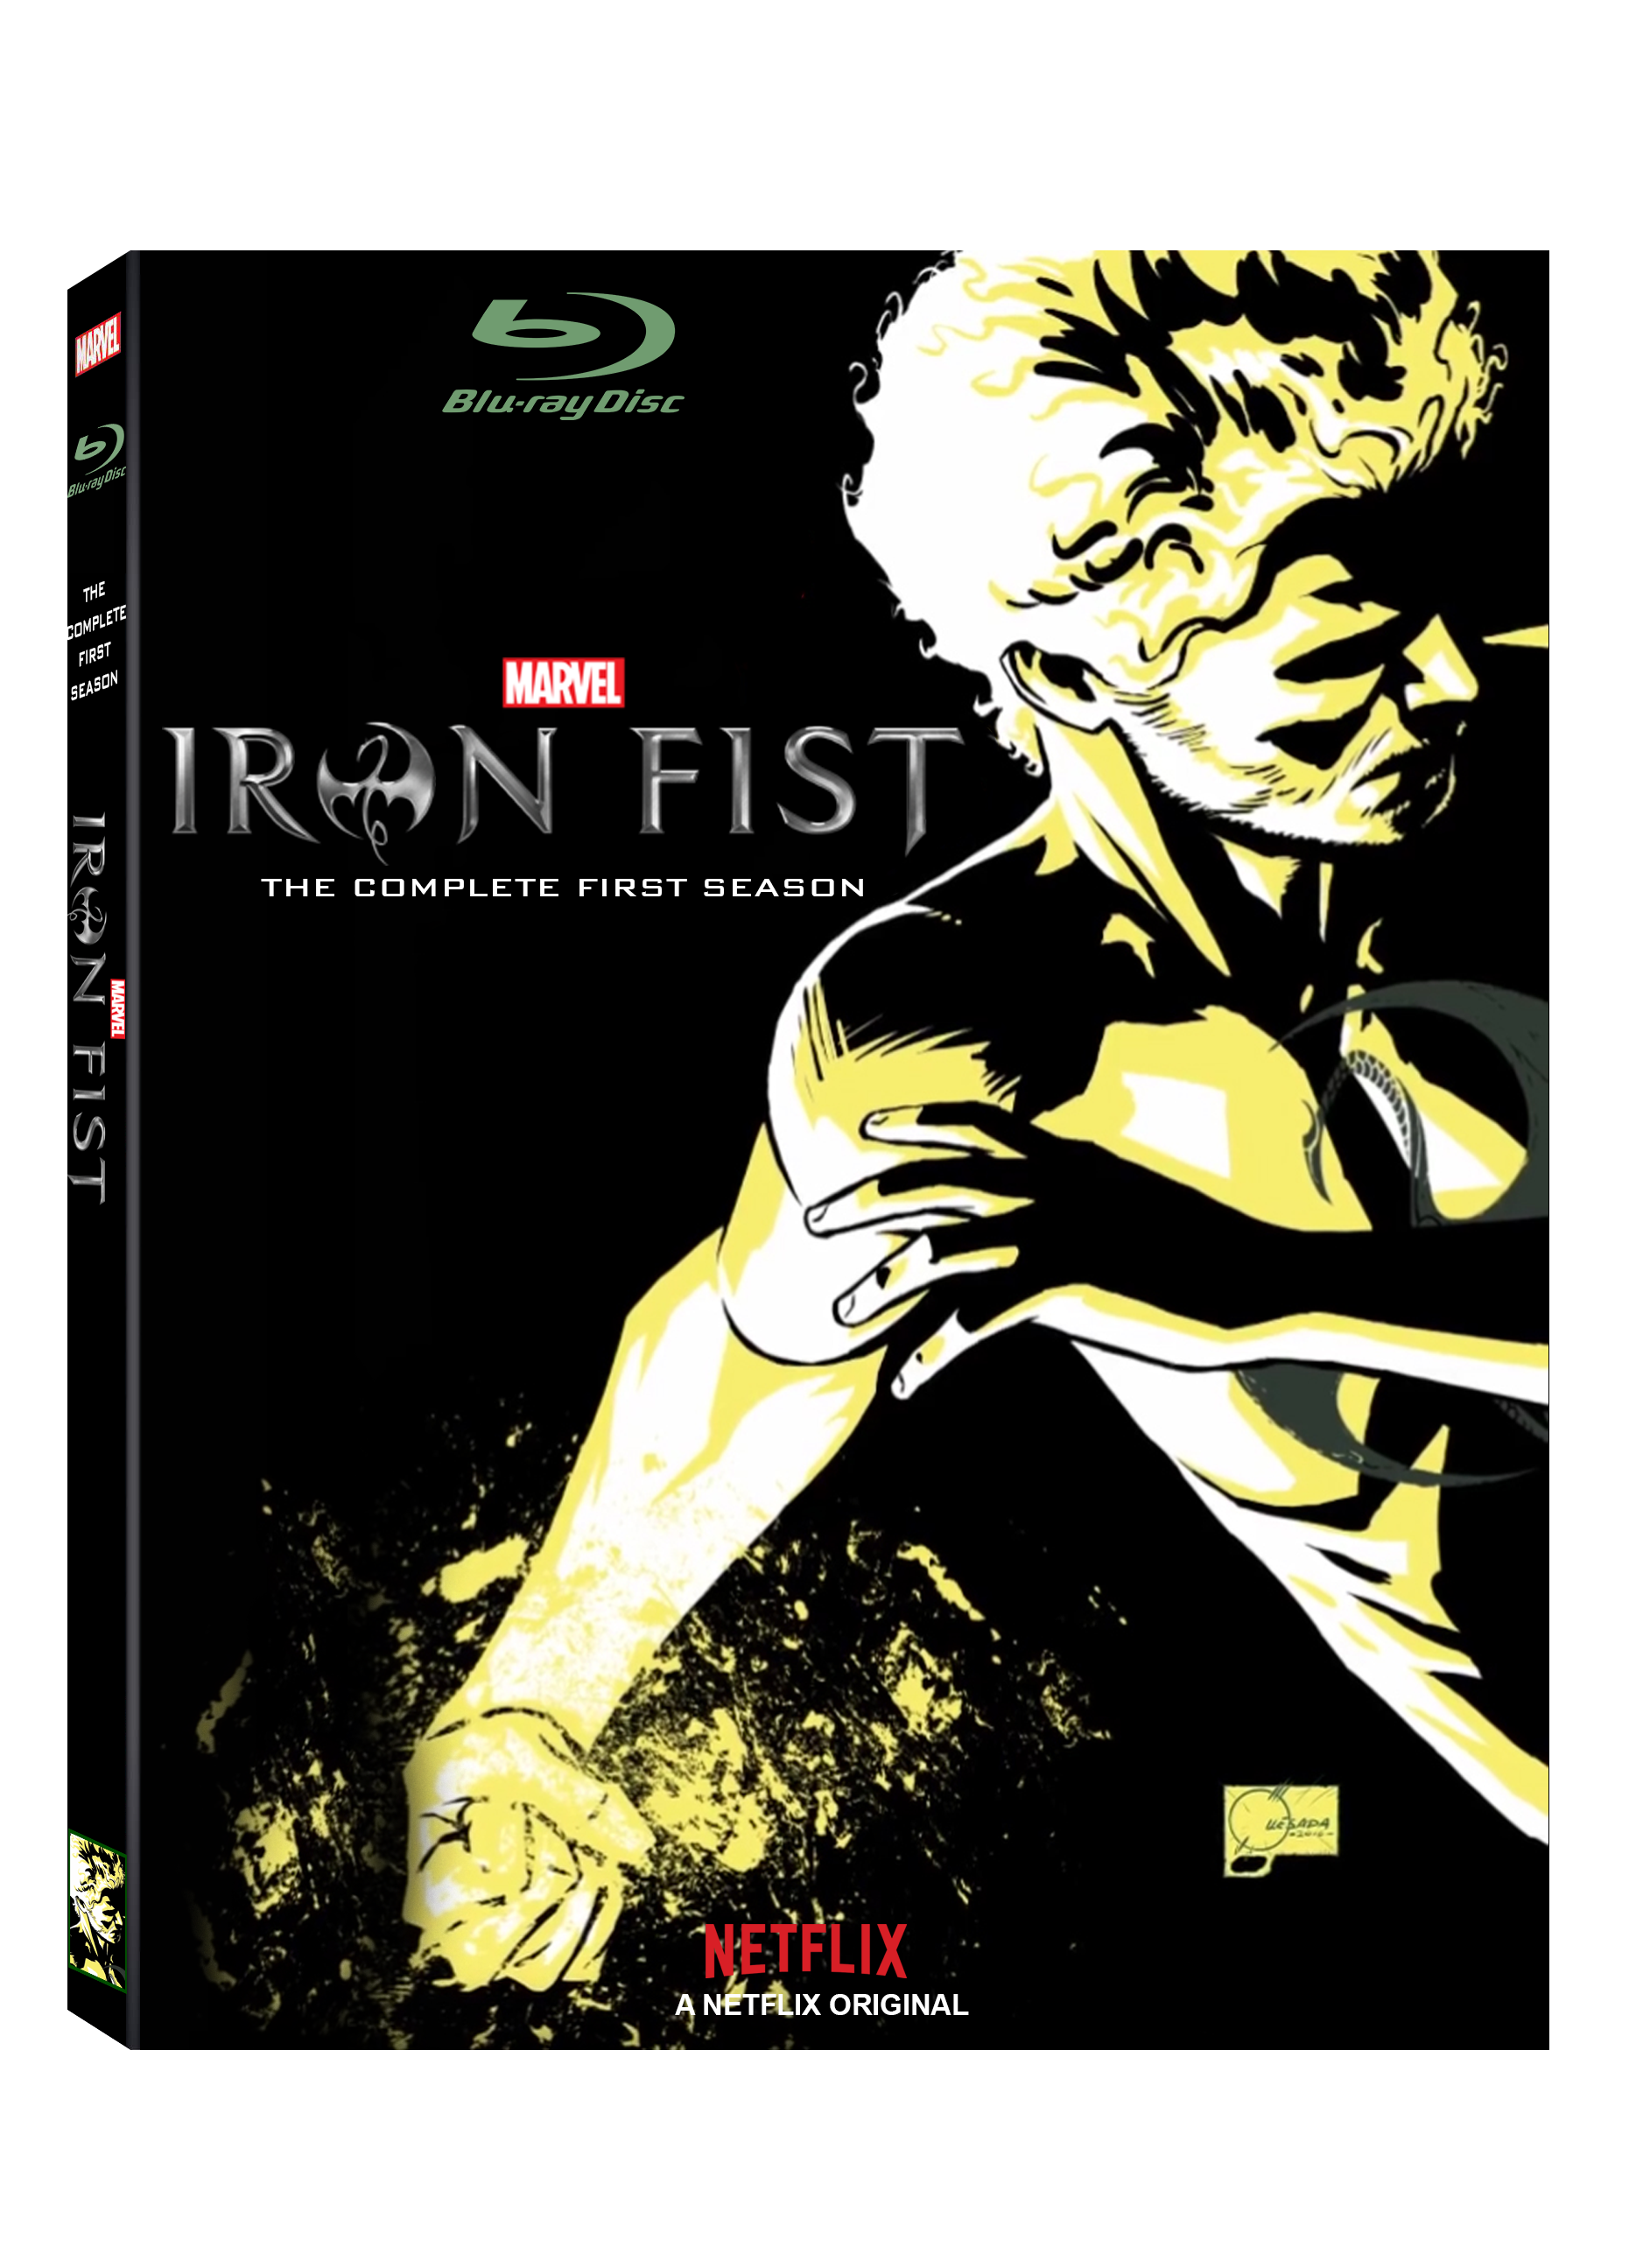 Netflix drawing outfit. Made an iron fist